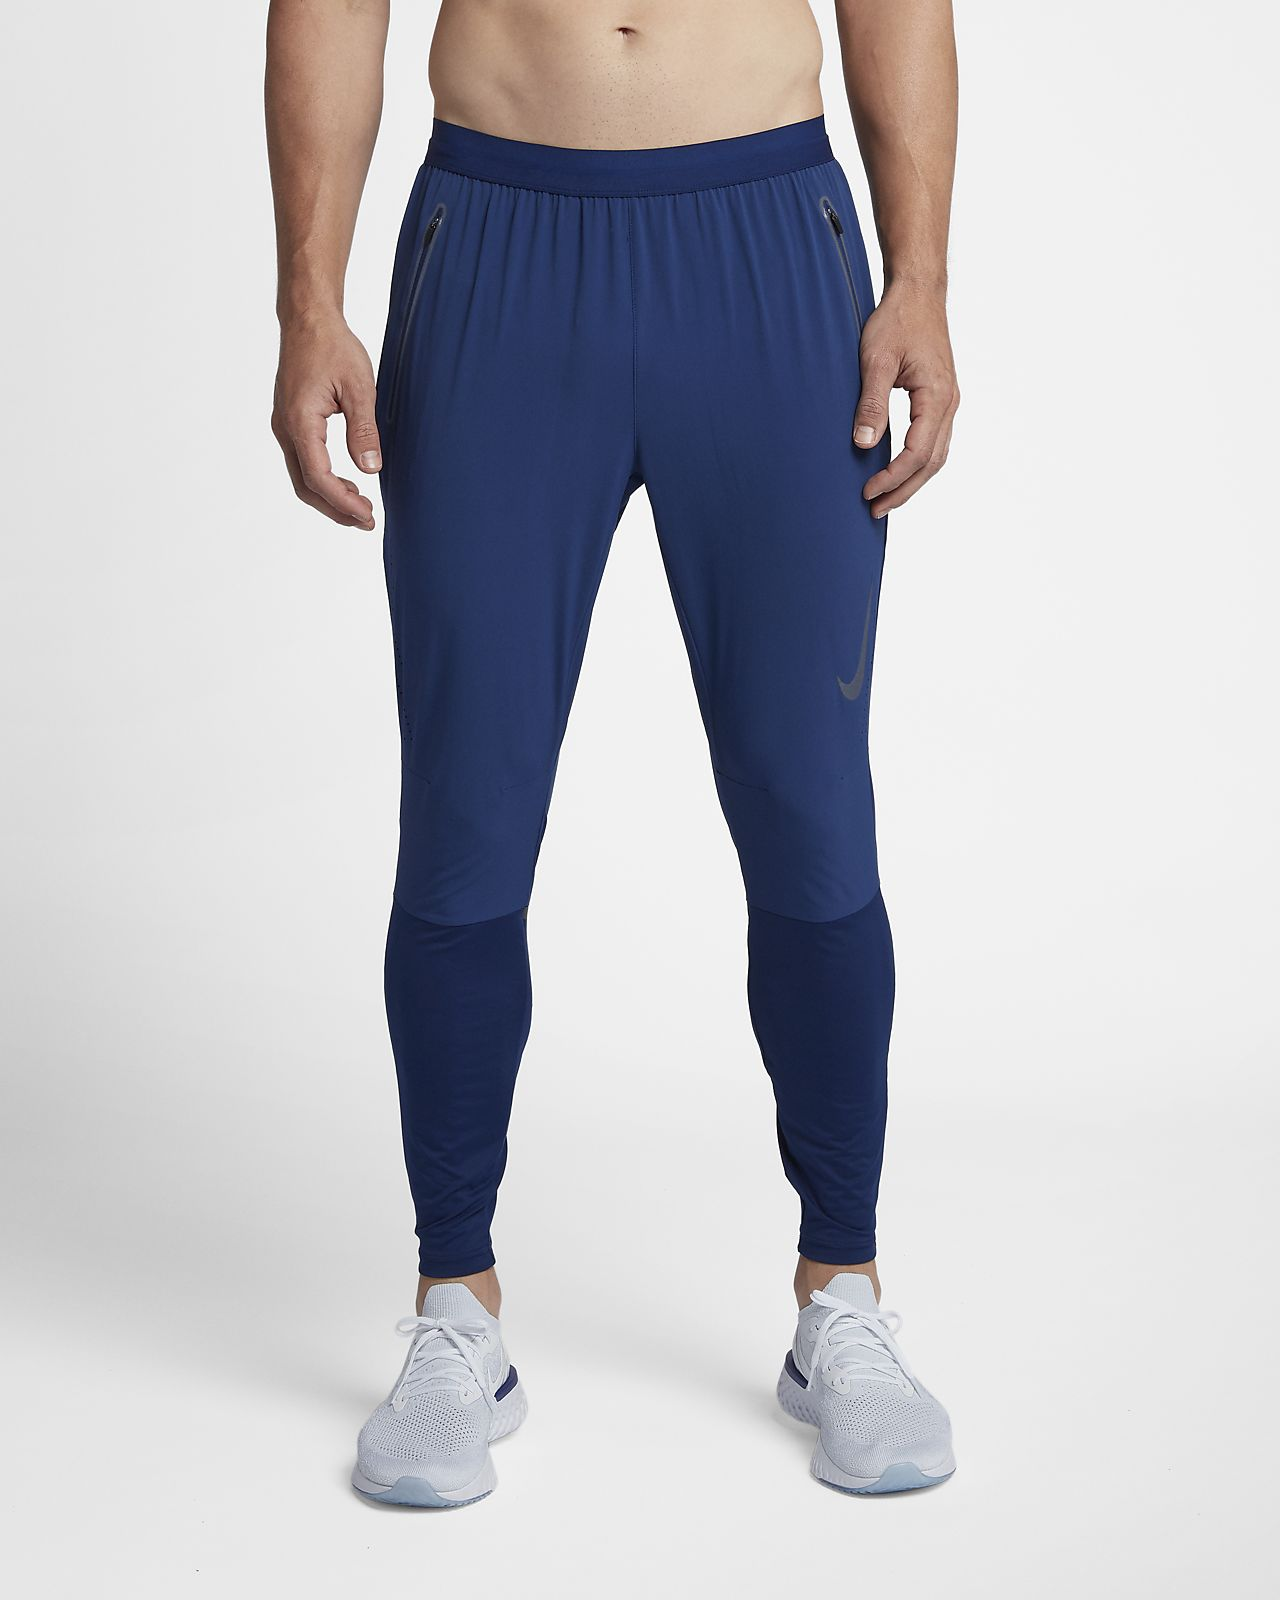 2df05807ecf7 Nike Swift Men s Running Trousers. Nike.com GB